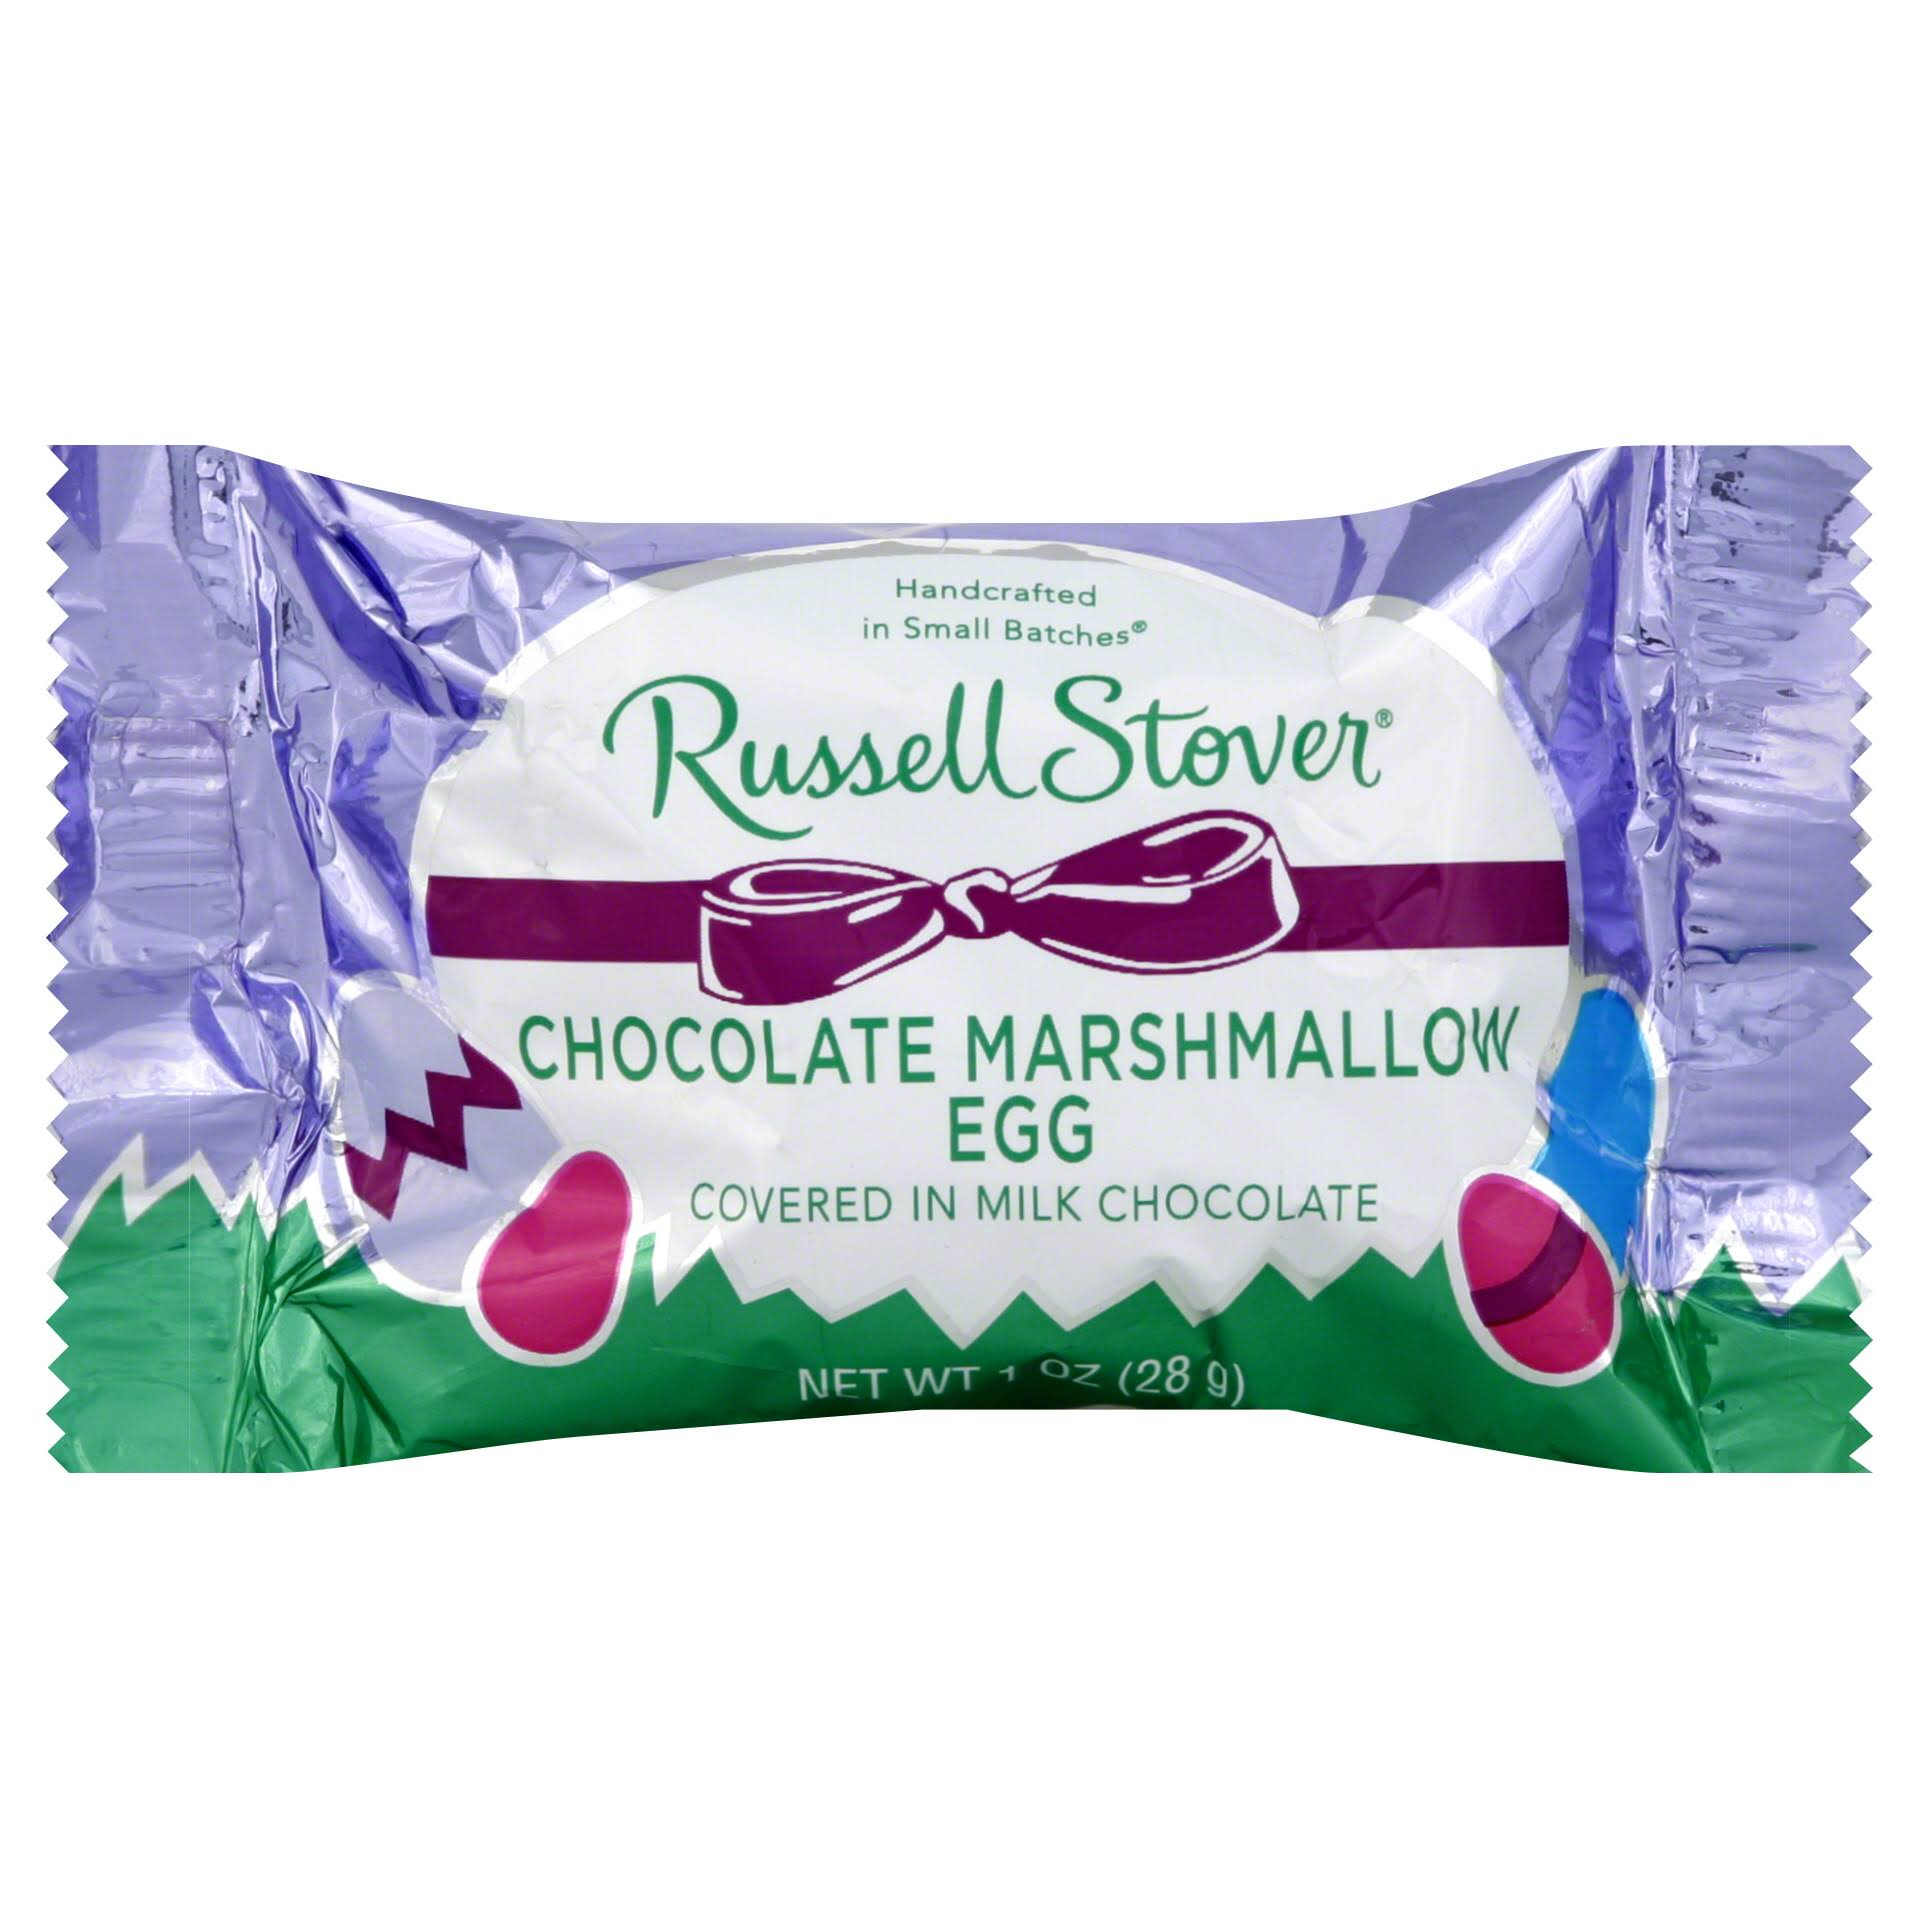 Russell Stover Marshmallow Egg, Chocolate - 1 oz